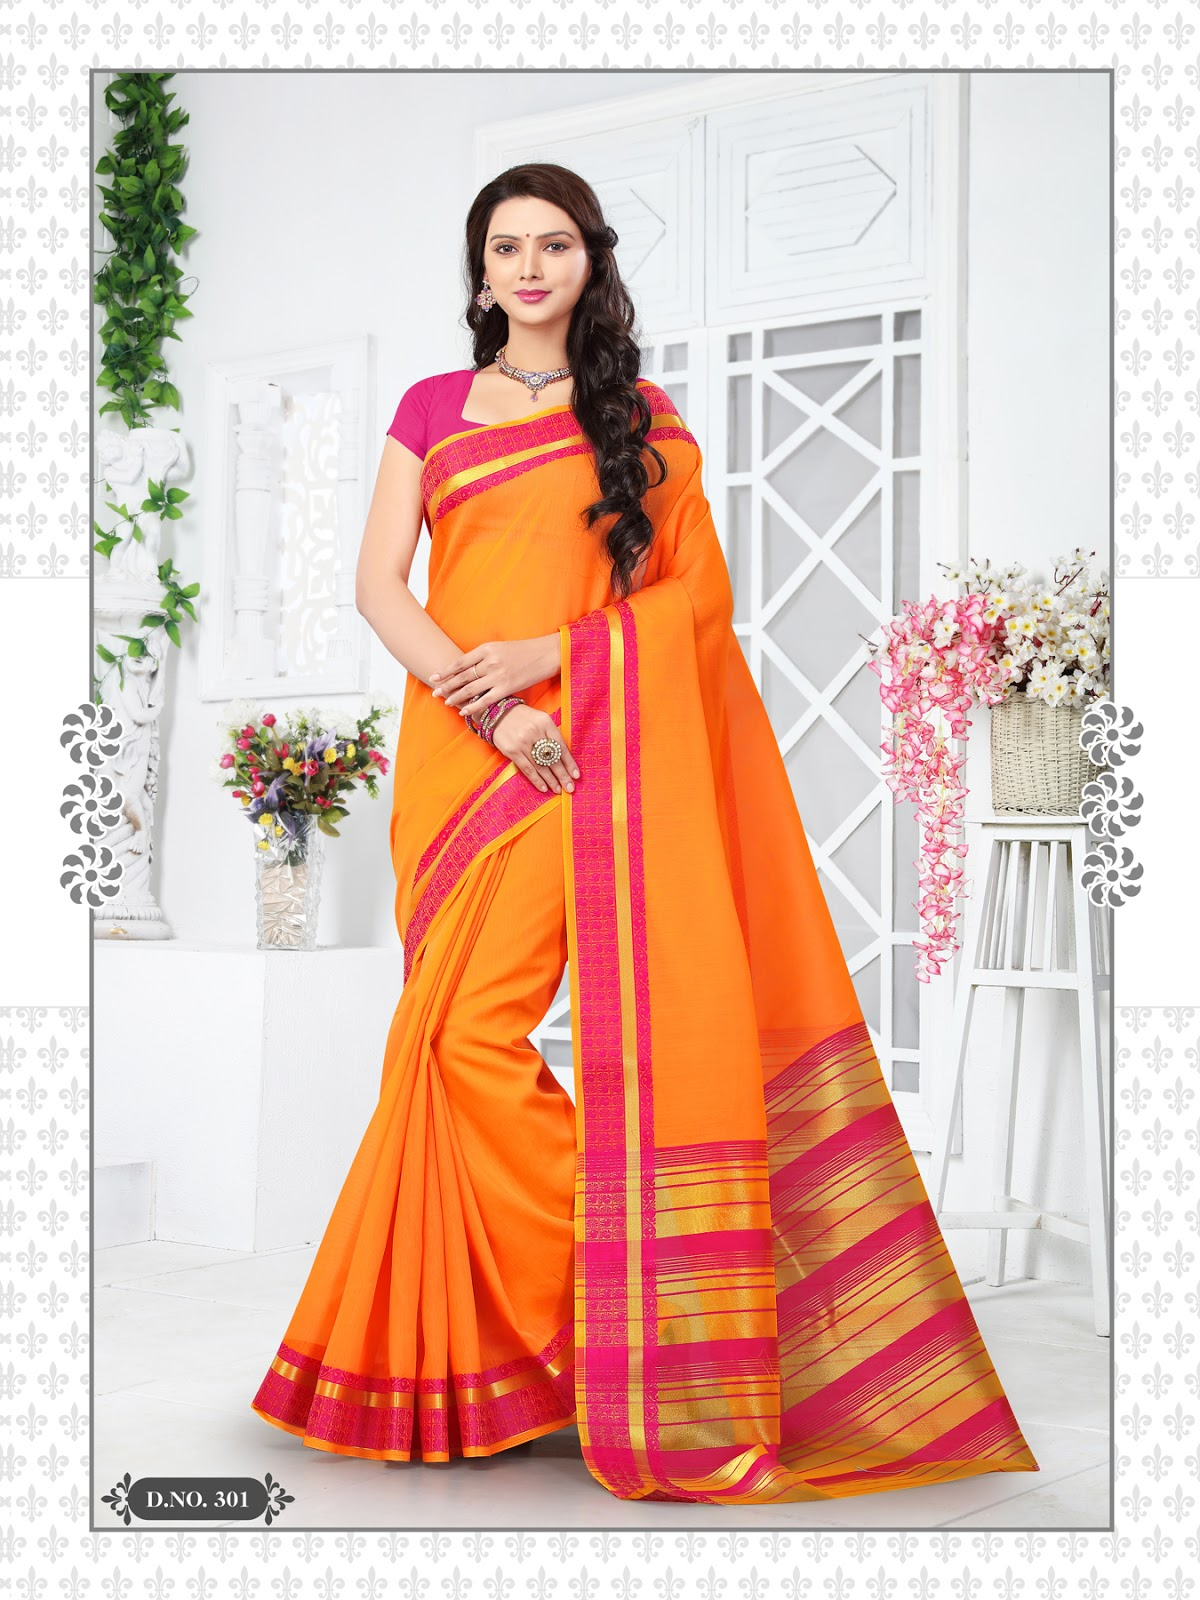 Shubh Shagun – Look Awesome Stylish And Fancy Saree